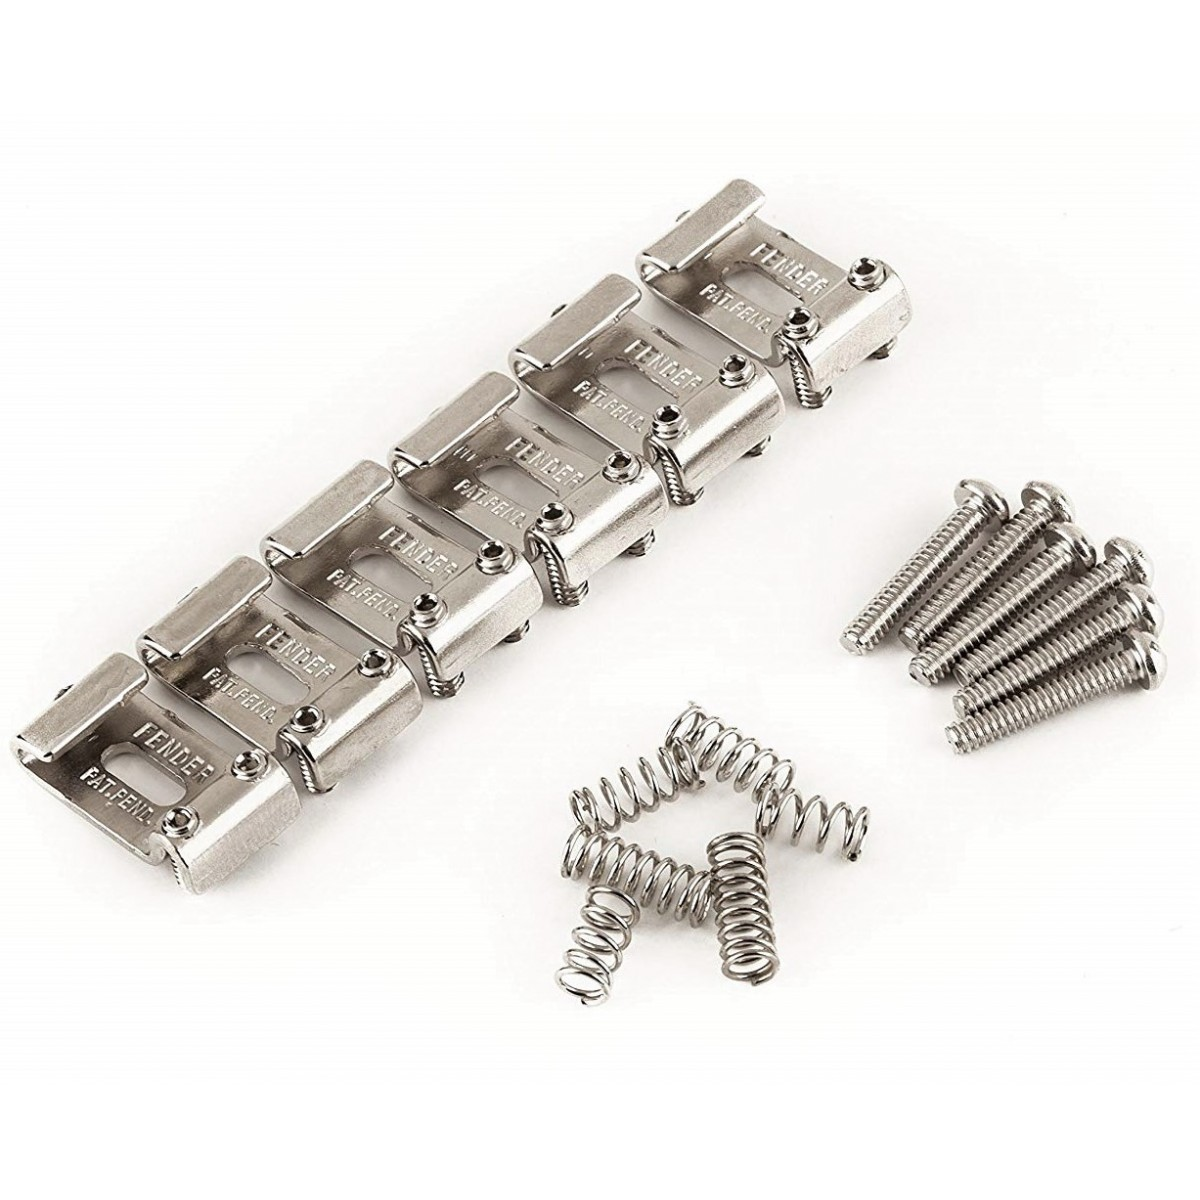 Di Marzio Cover Humbucker Standard Nickel